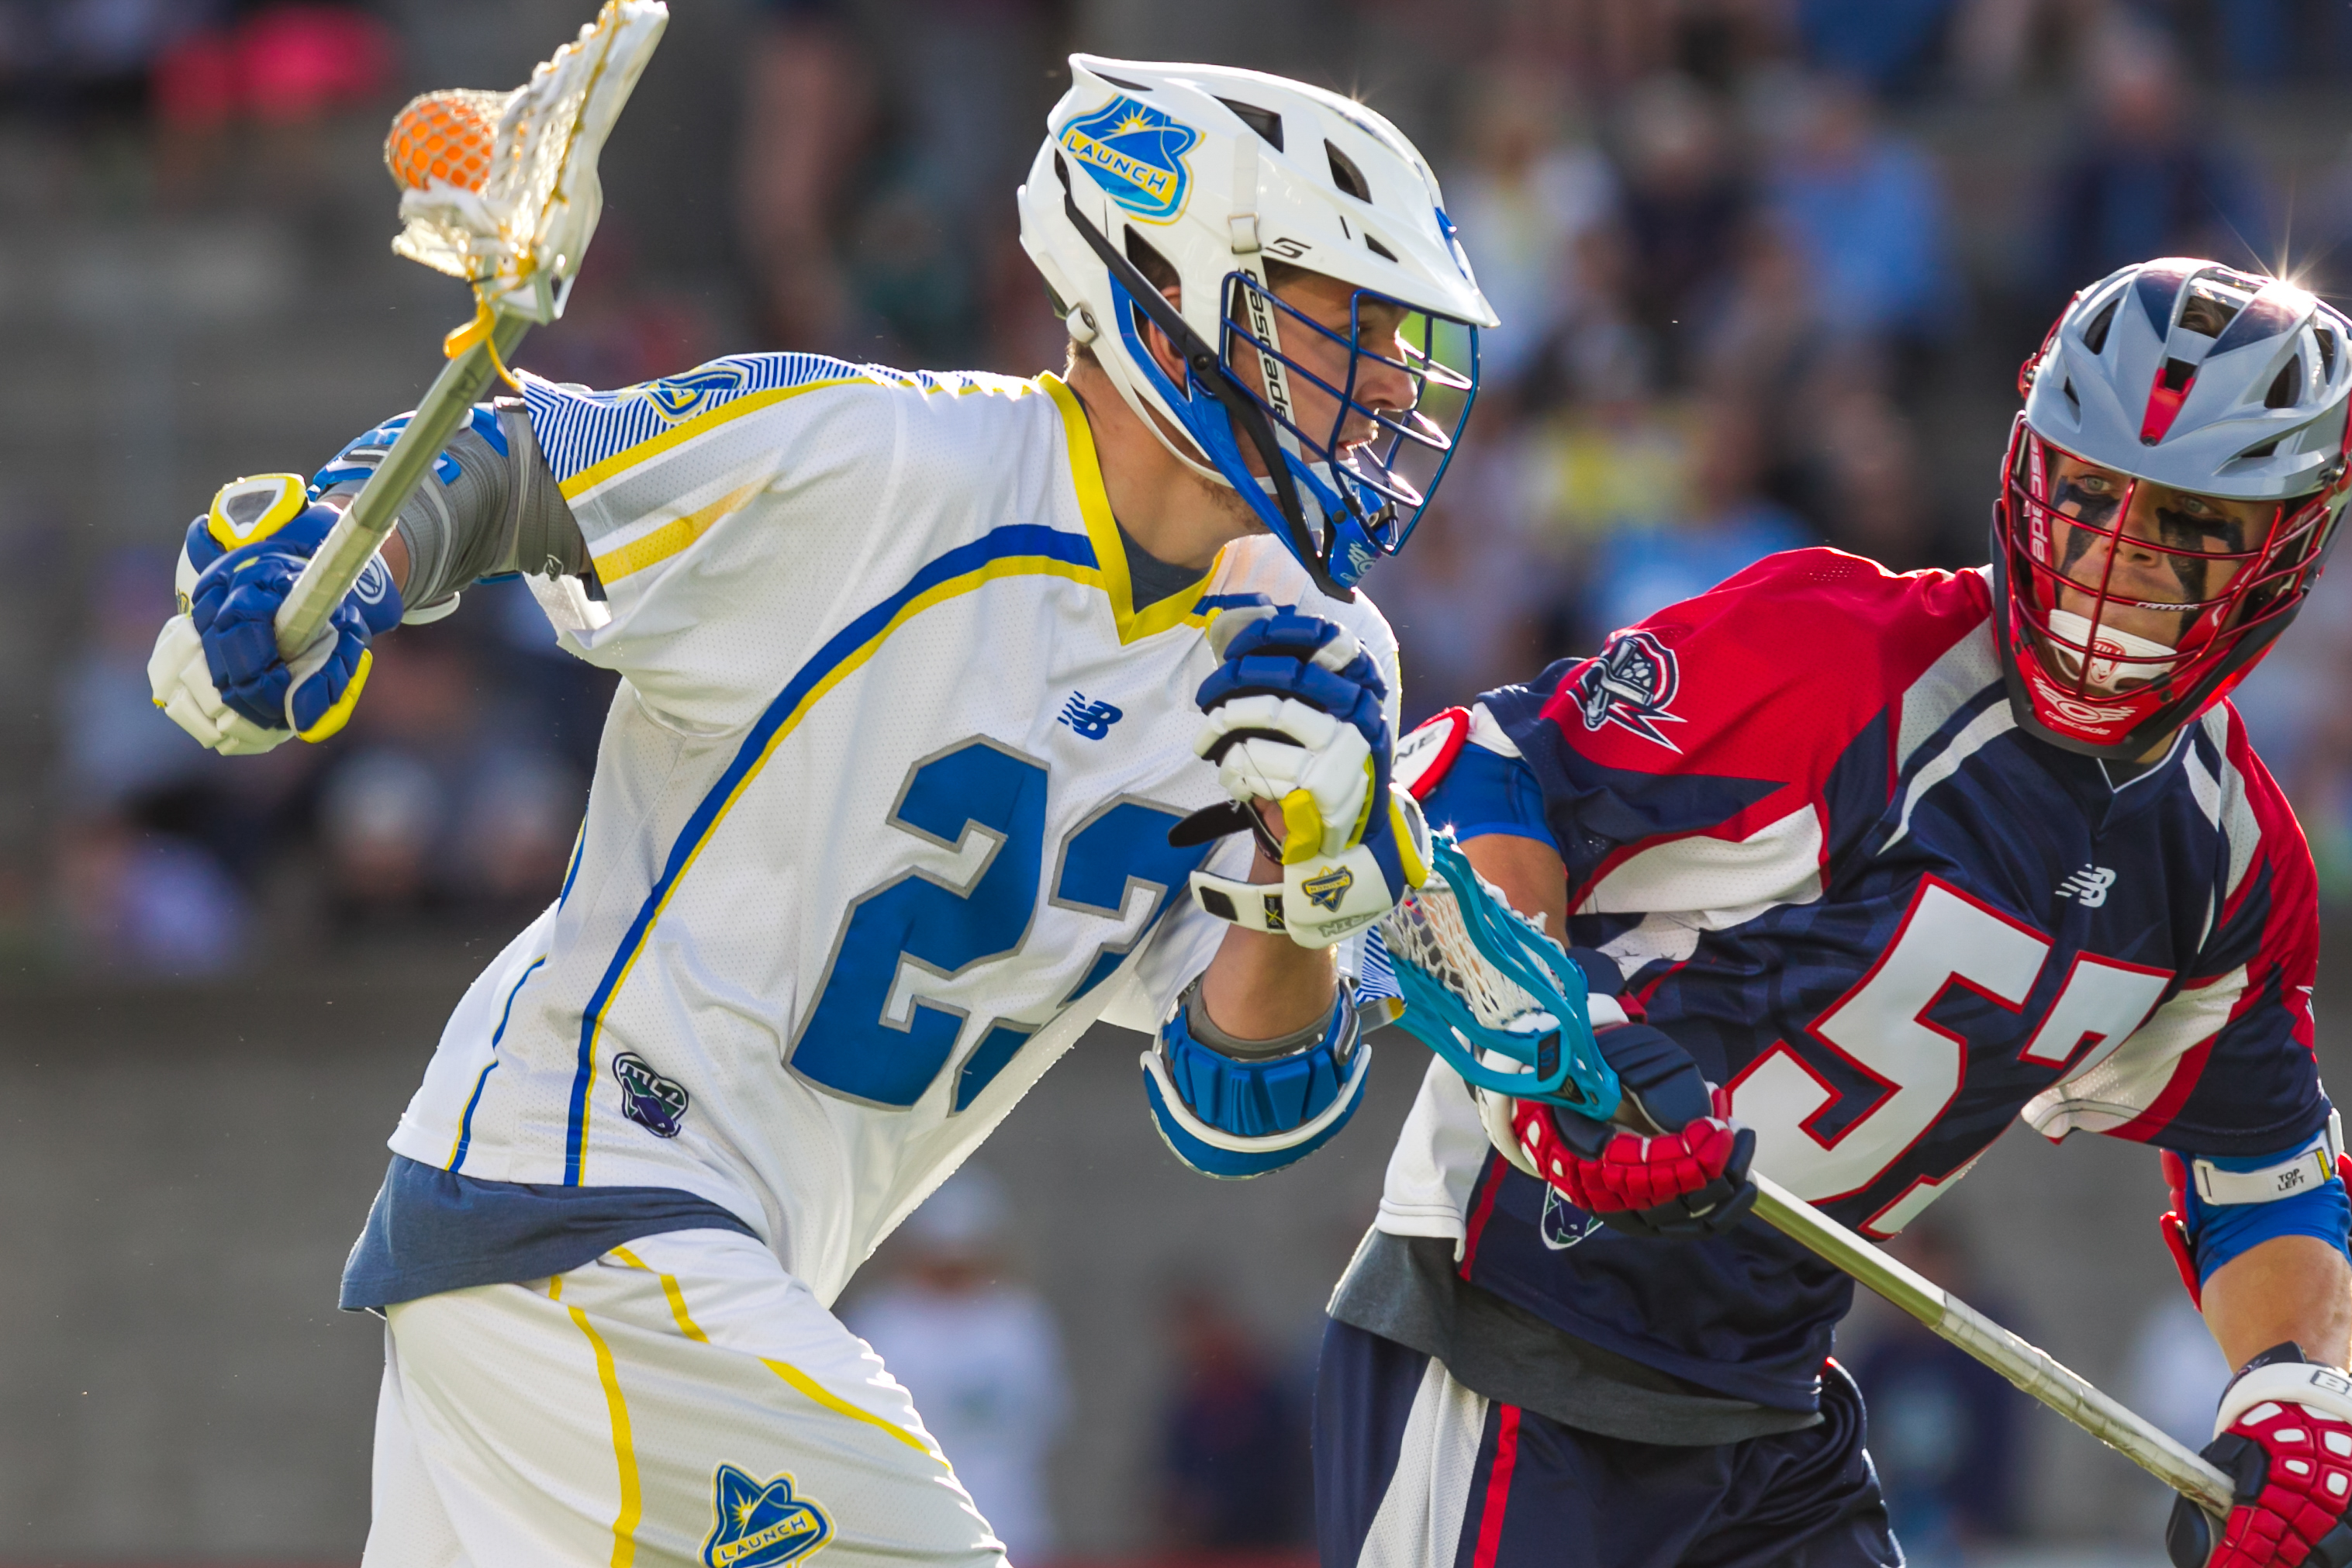 July 29, 2017; Boston, MA, USA; Florida Launch @ Boston Cannons at Harvard Stadium. Photography Credit: Jimmy Cirrone